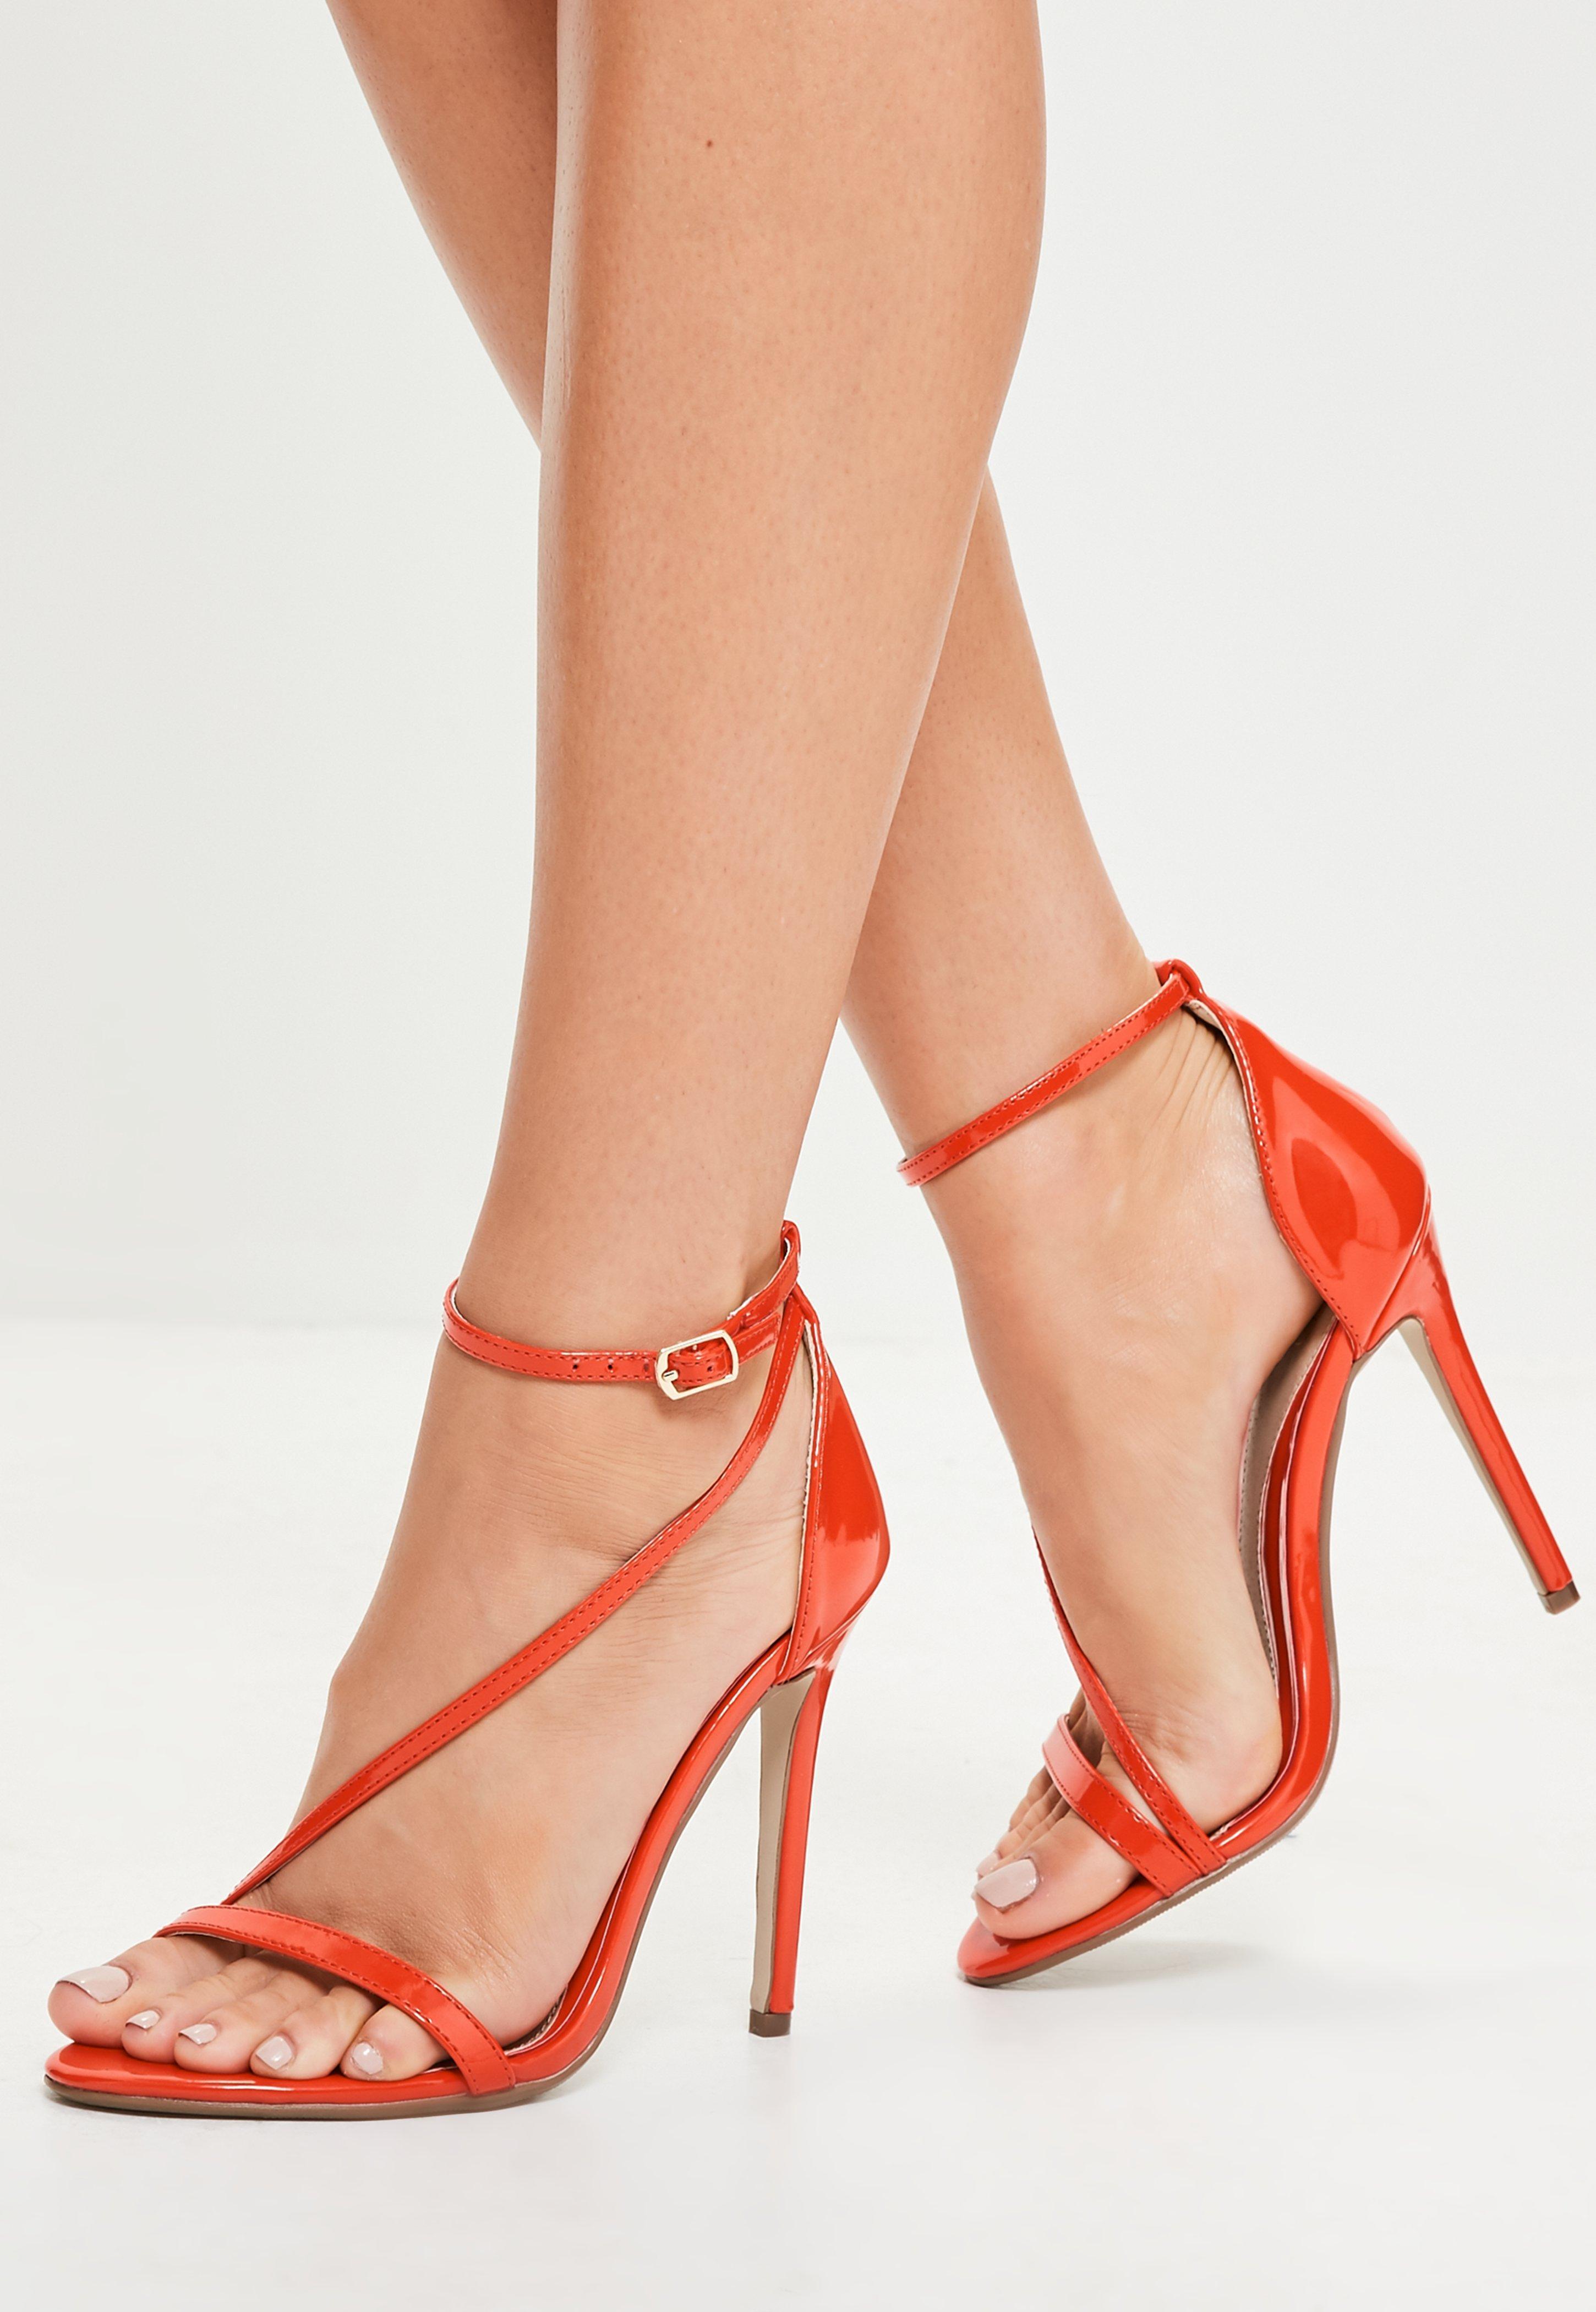 d1d2ba165b36 Missguided Red Asymmetric Strappy Sandals in Red - Lyst